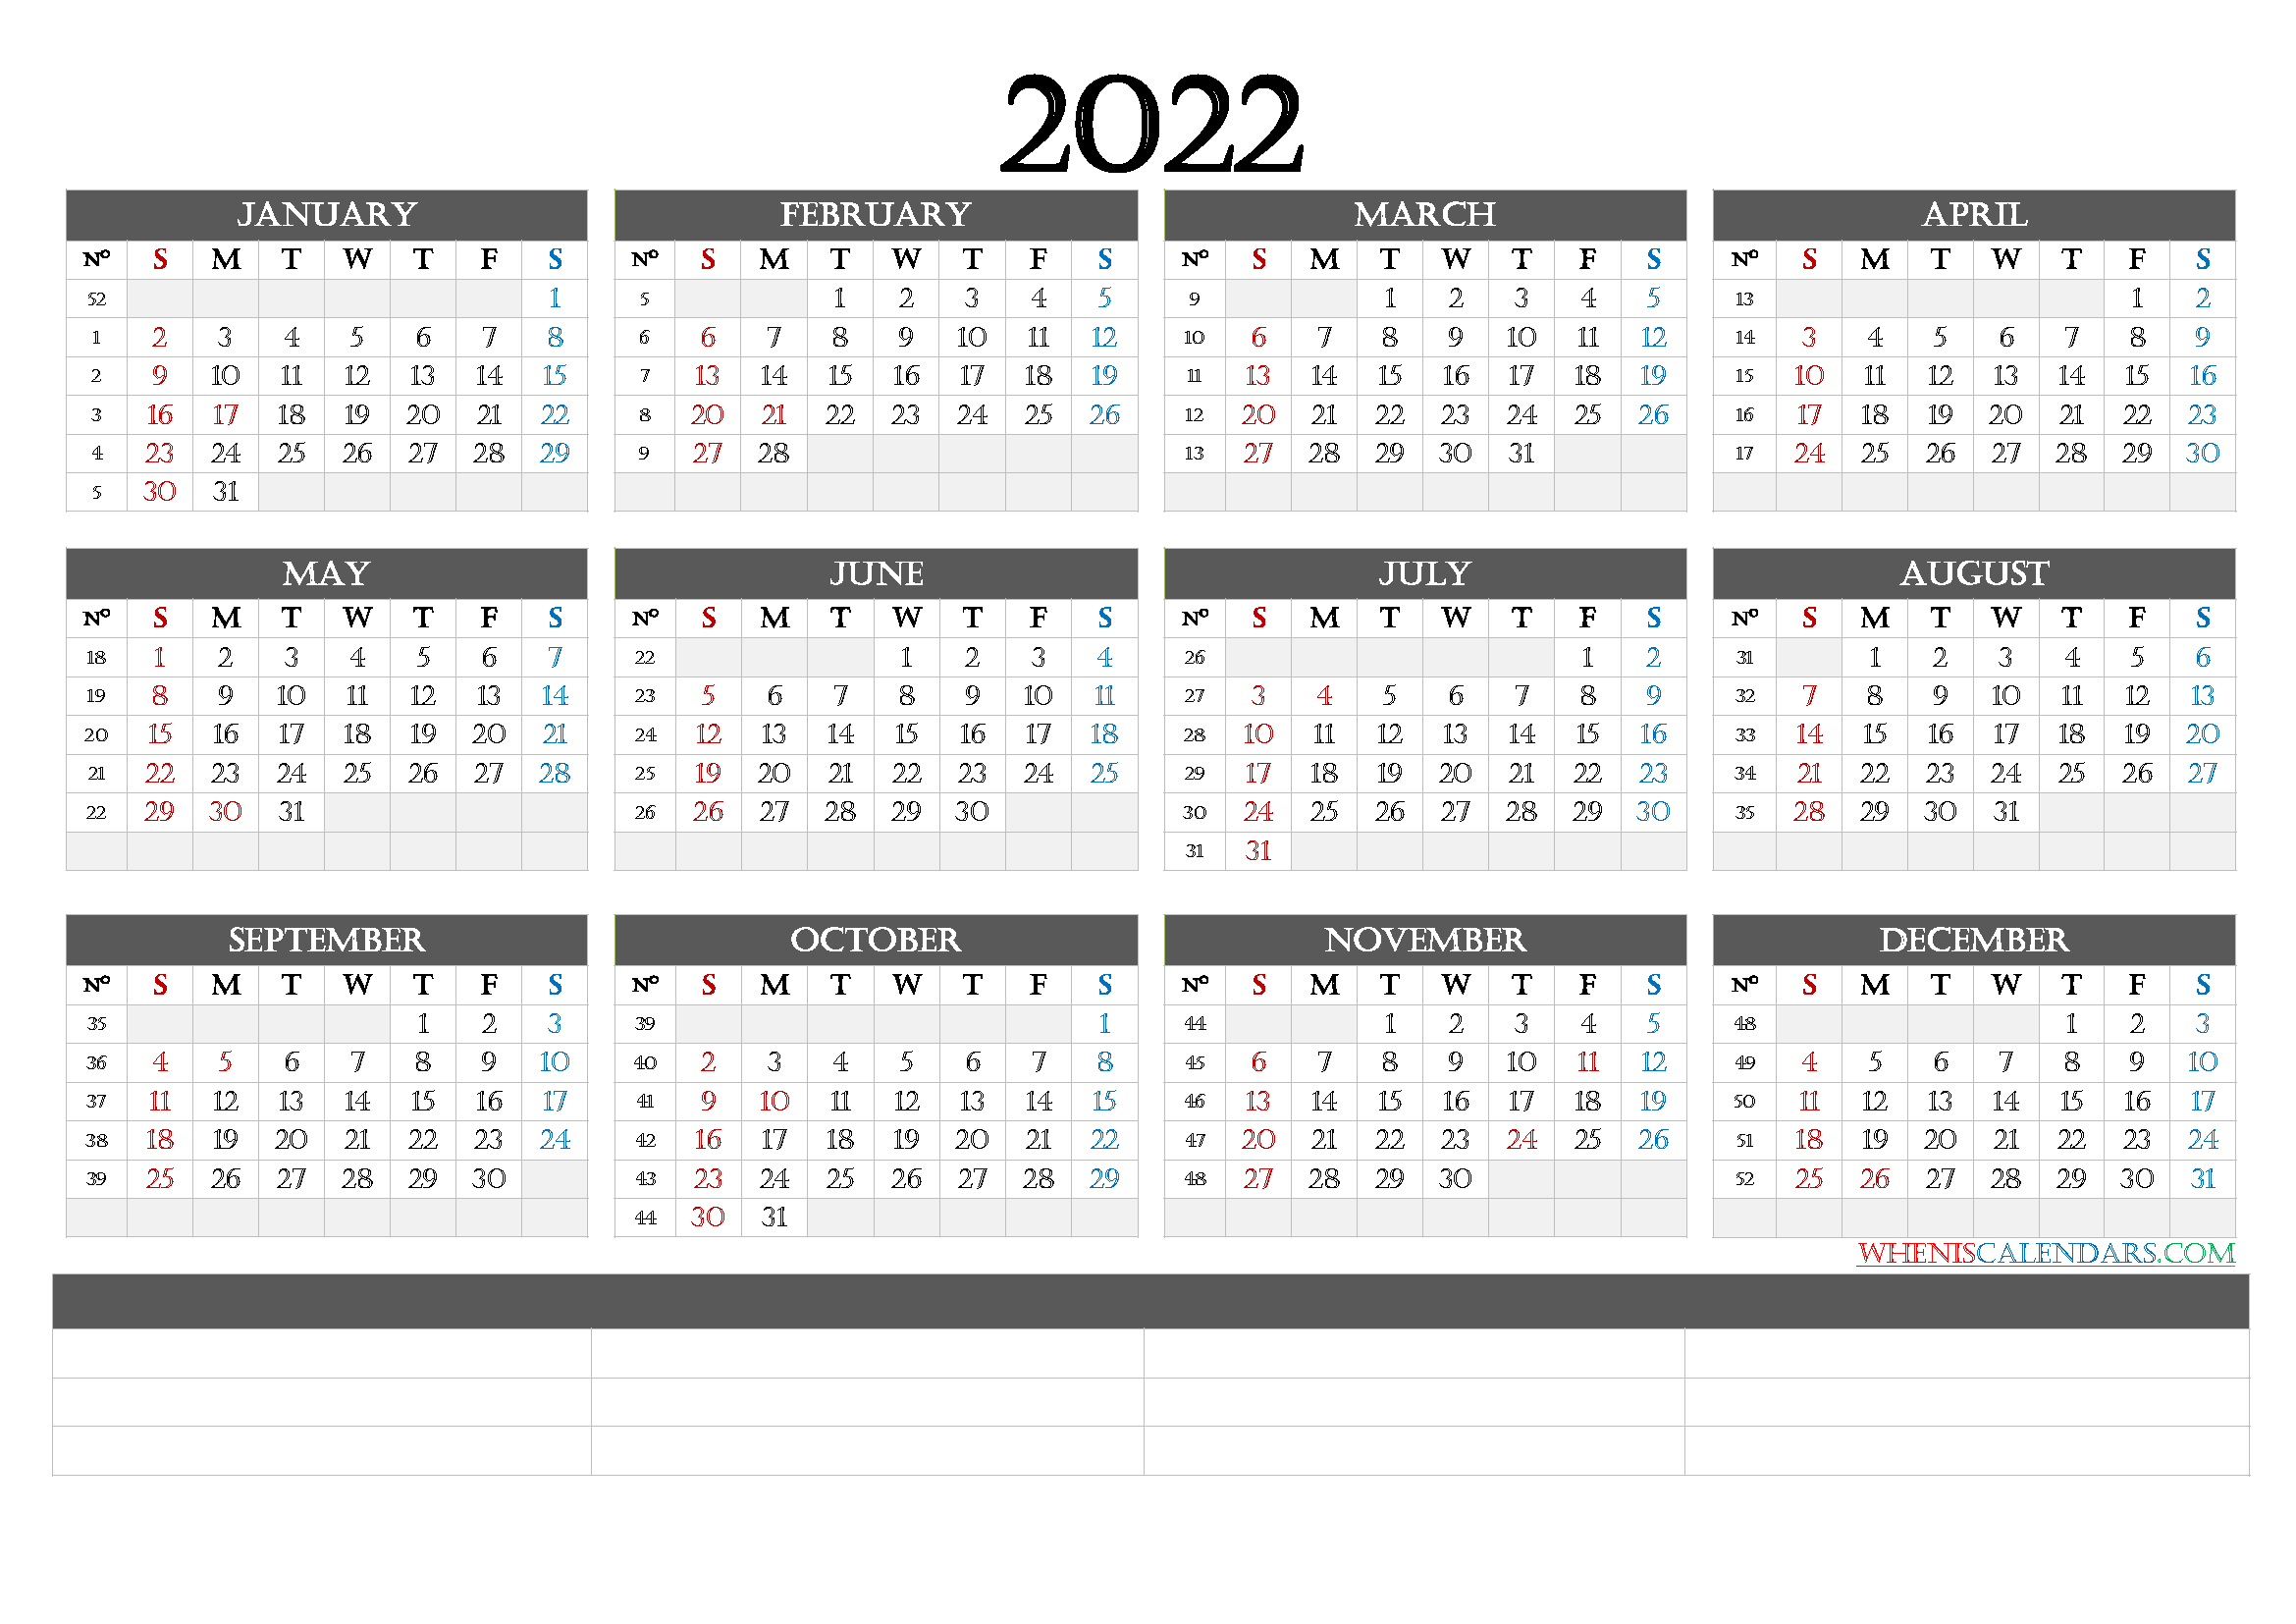 2022 Calendar with Week Numbers Printable - CalendraEX.com